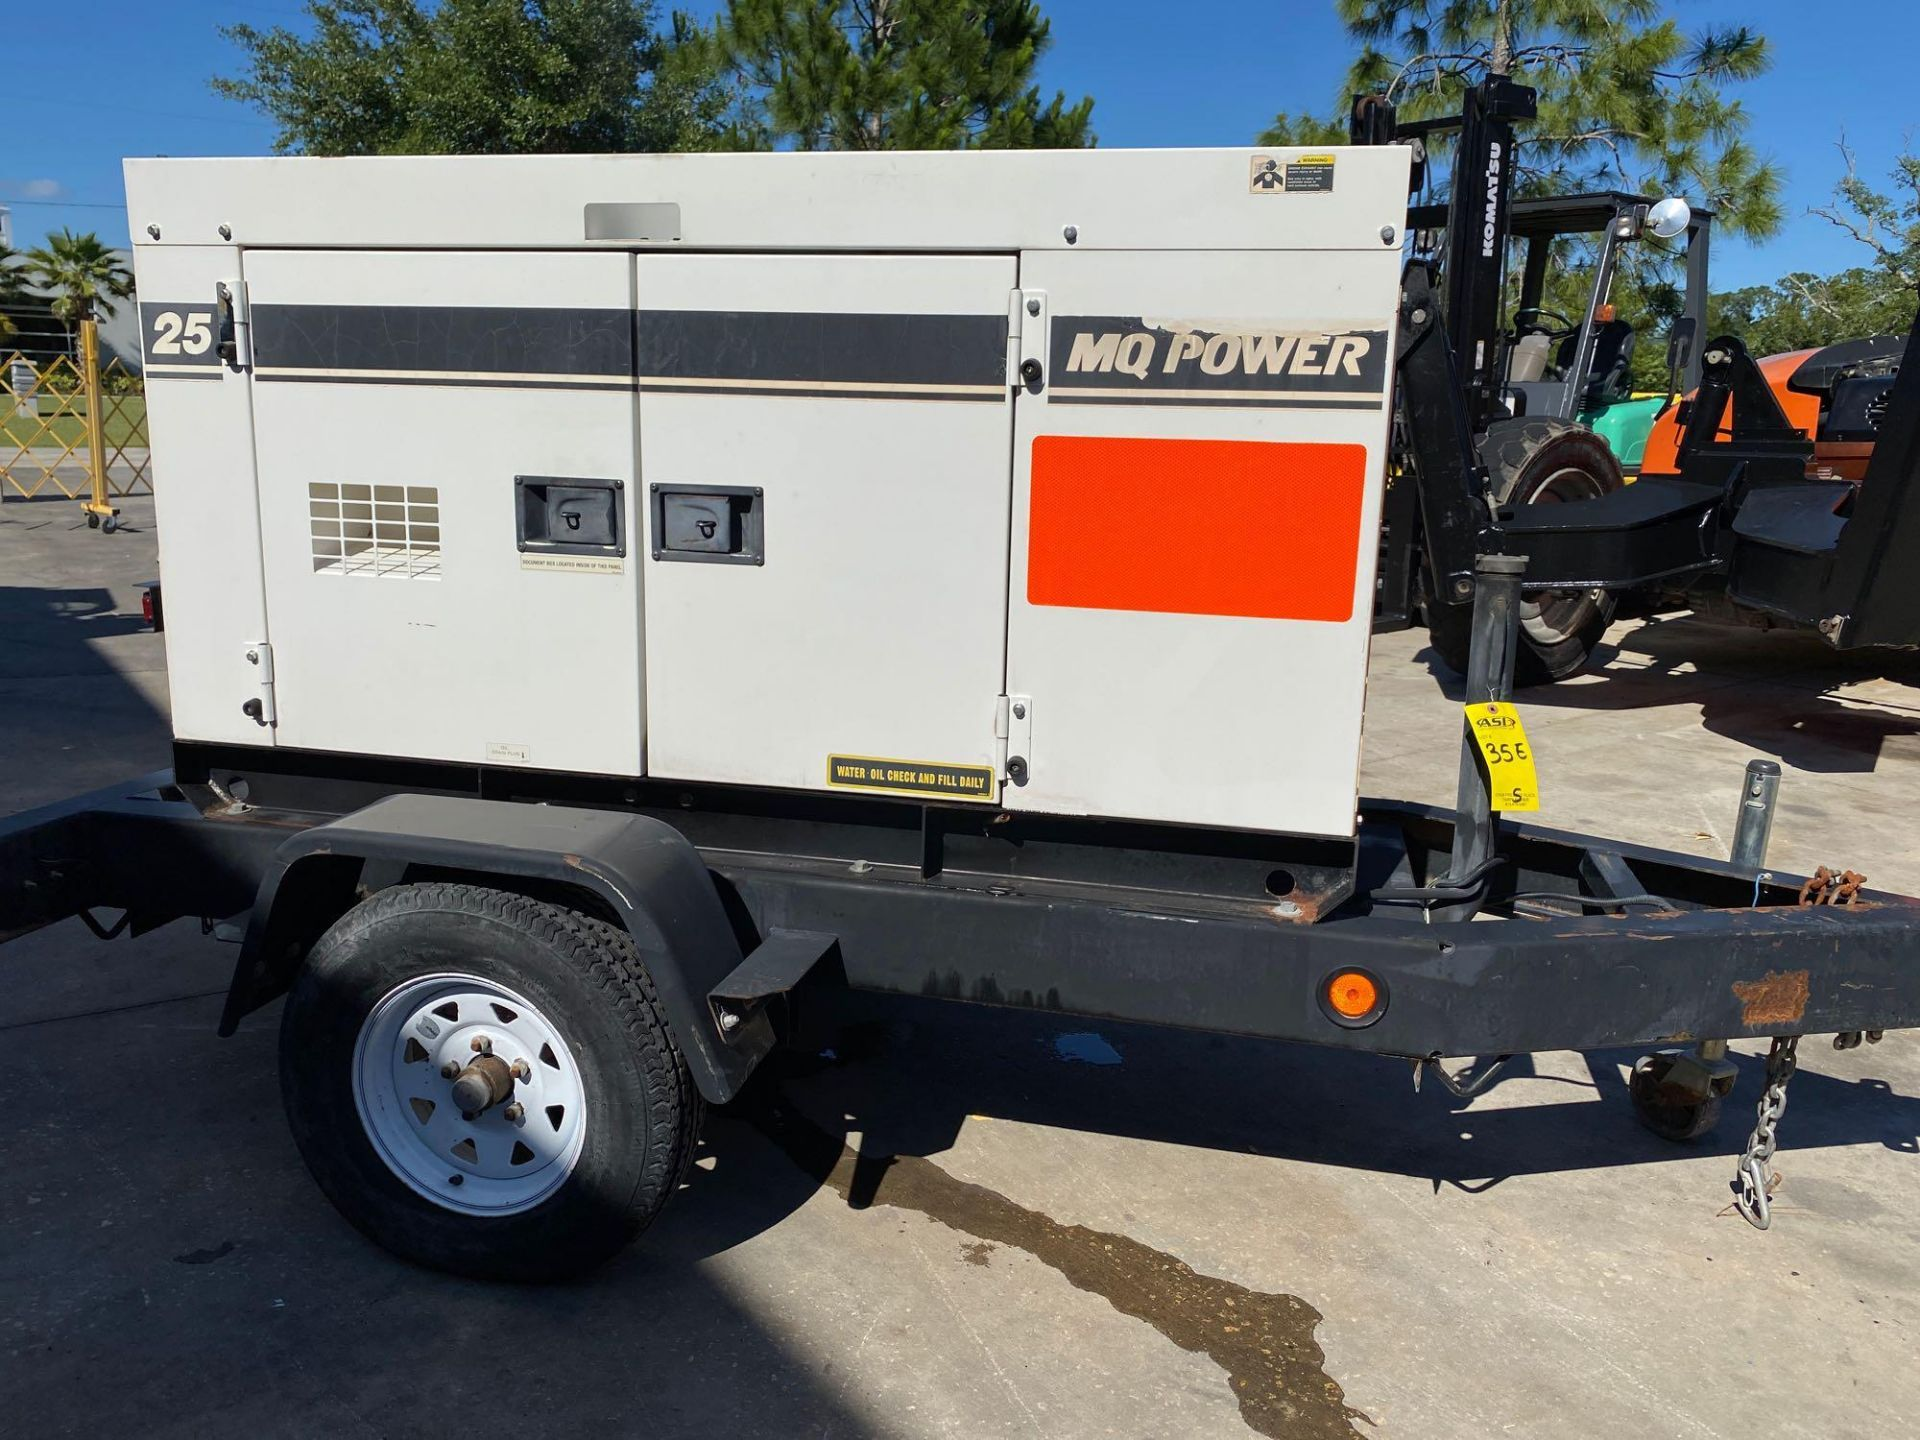 Lot 35E - 2011/2012 WHISPERWATT MQ POWER DIESEL GENERATOR, TRAILER MOUNTED, 20KW, 25KVA, RUNS AND OPERATES